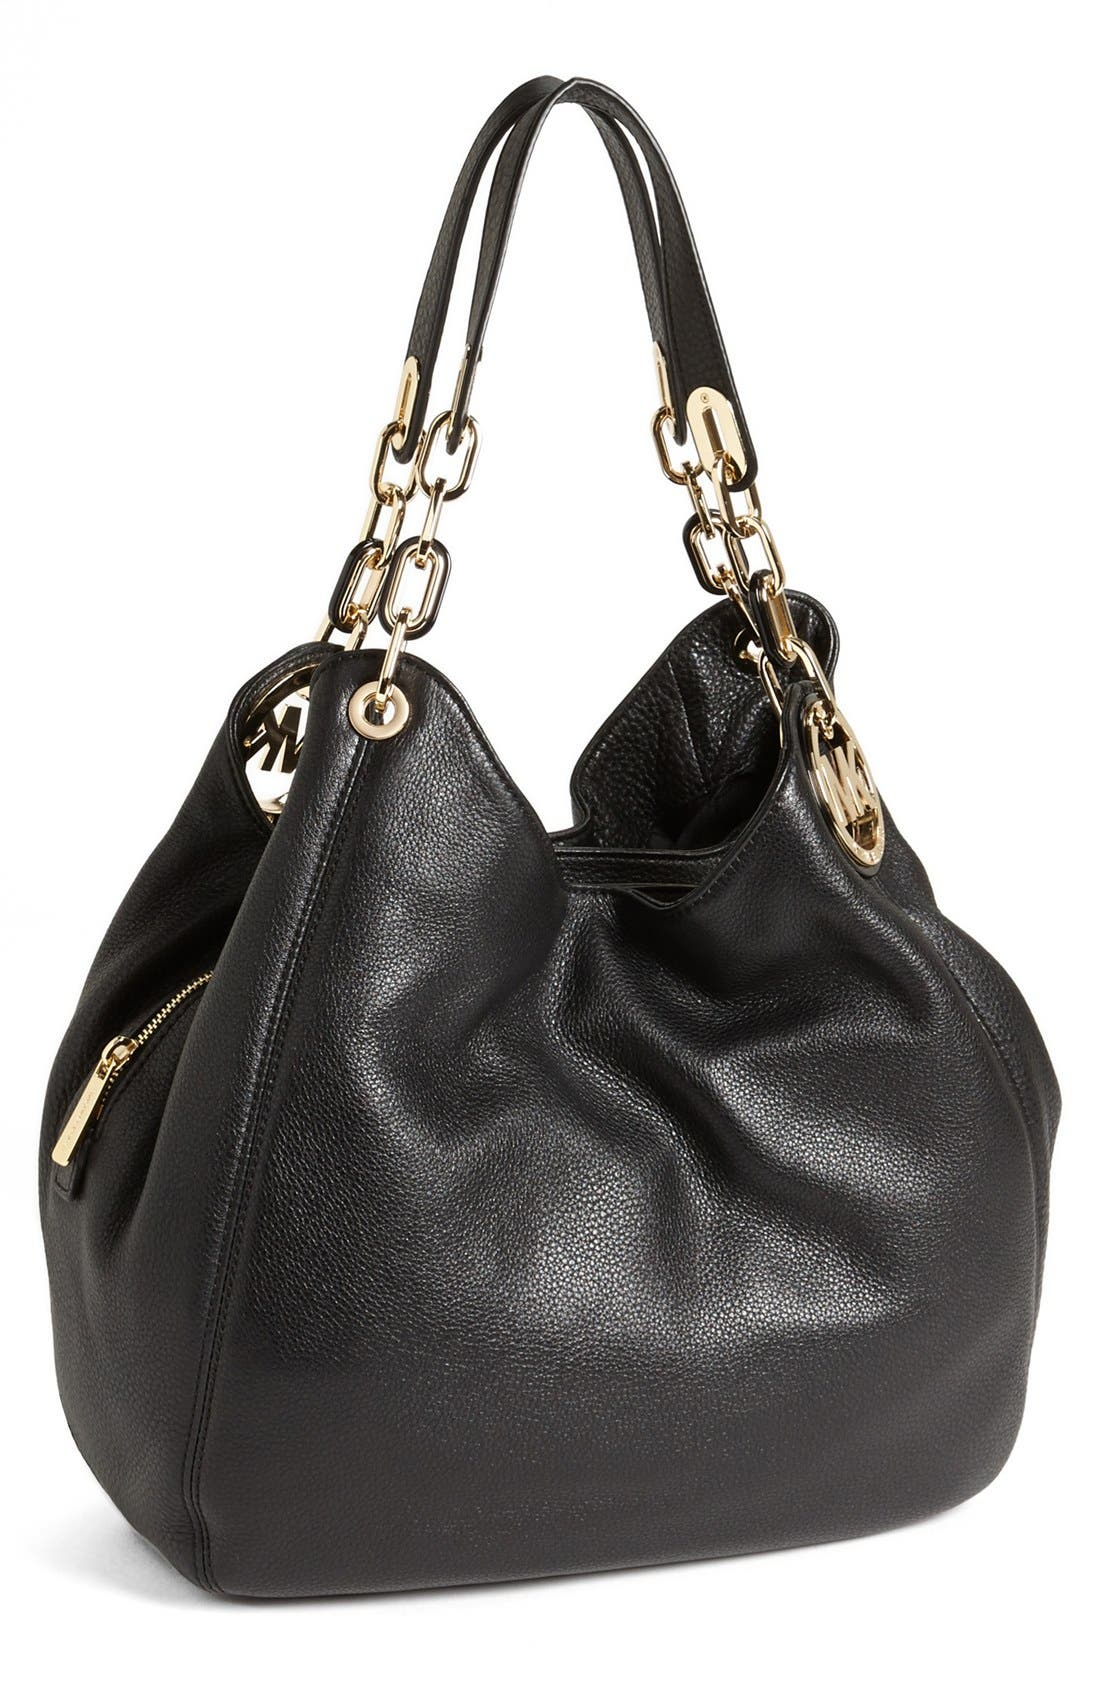 MICHAEL MICHAEL KORS 'Fulton - Large' Tote, Main, color, 001